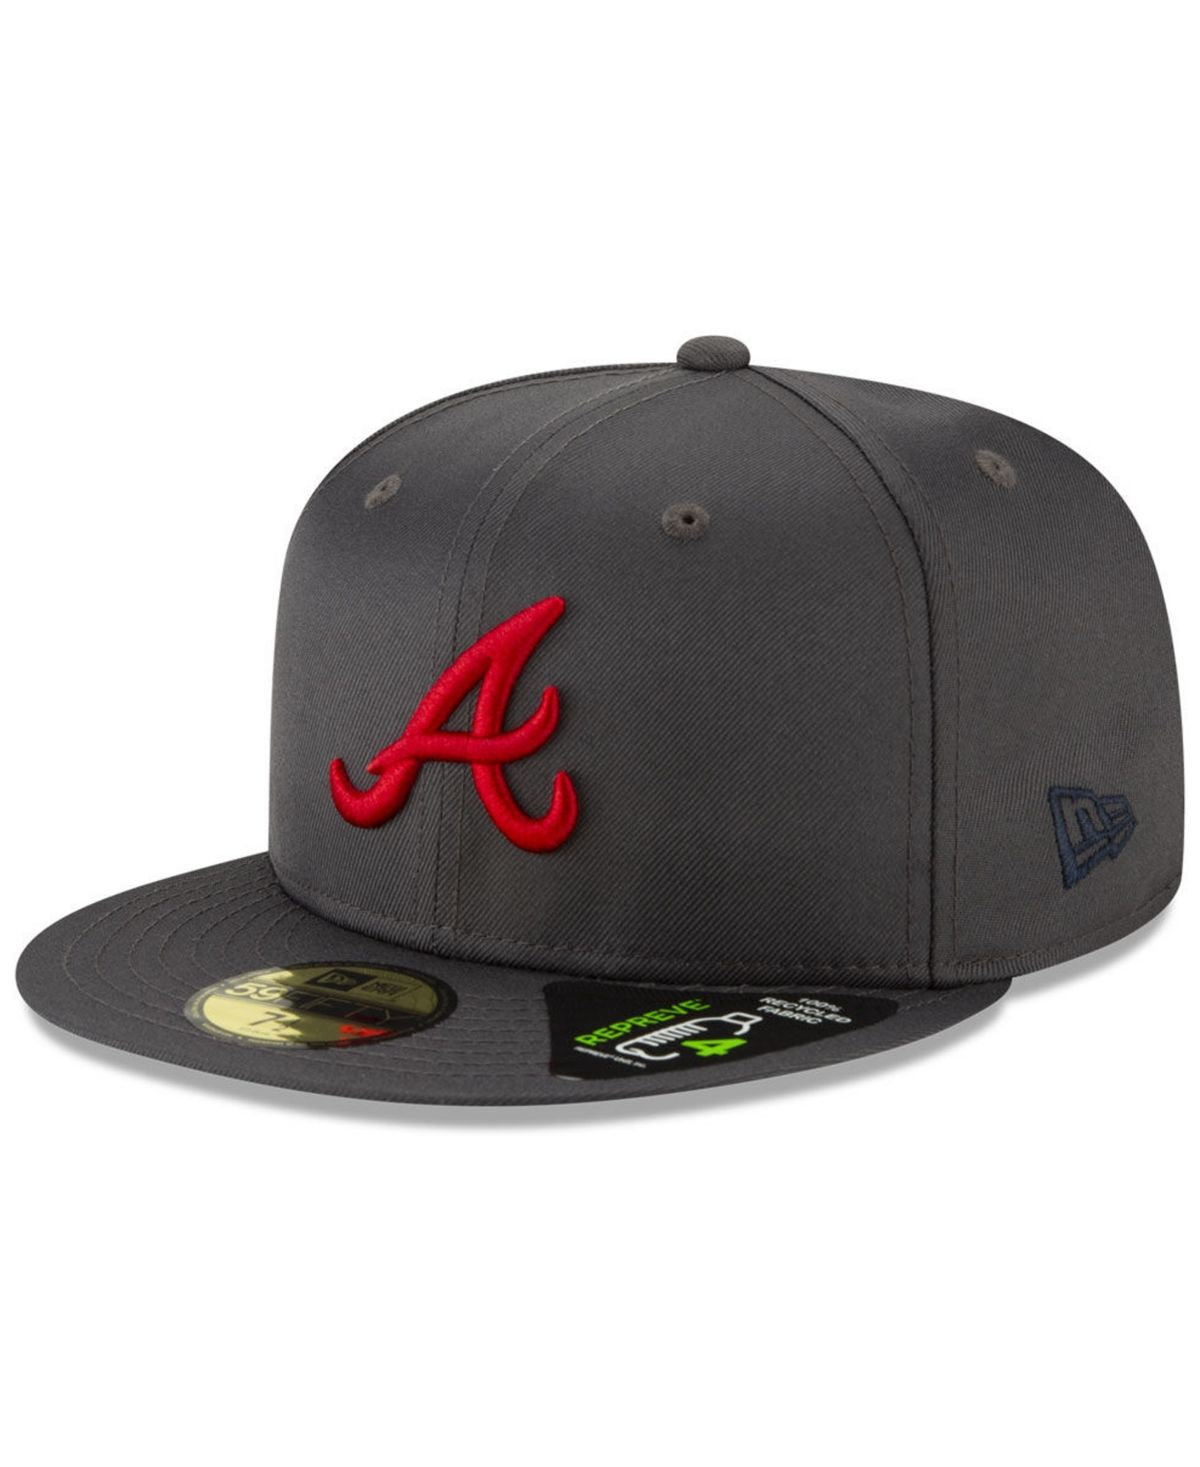 New Era Atlanta Braves Recycled 59fifty Fitted Cap Graphite Fitted Caps New Era Atlanta Braves